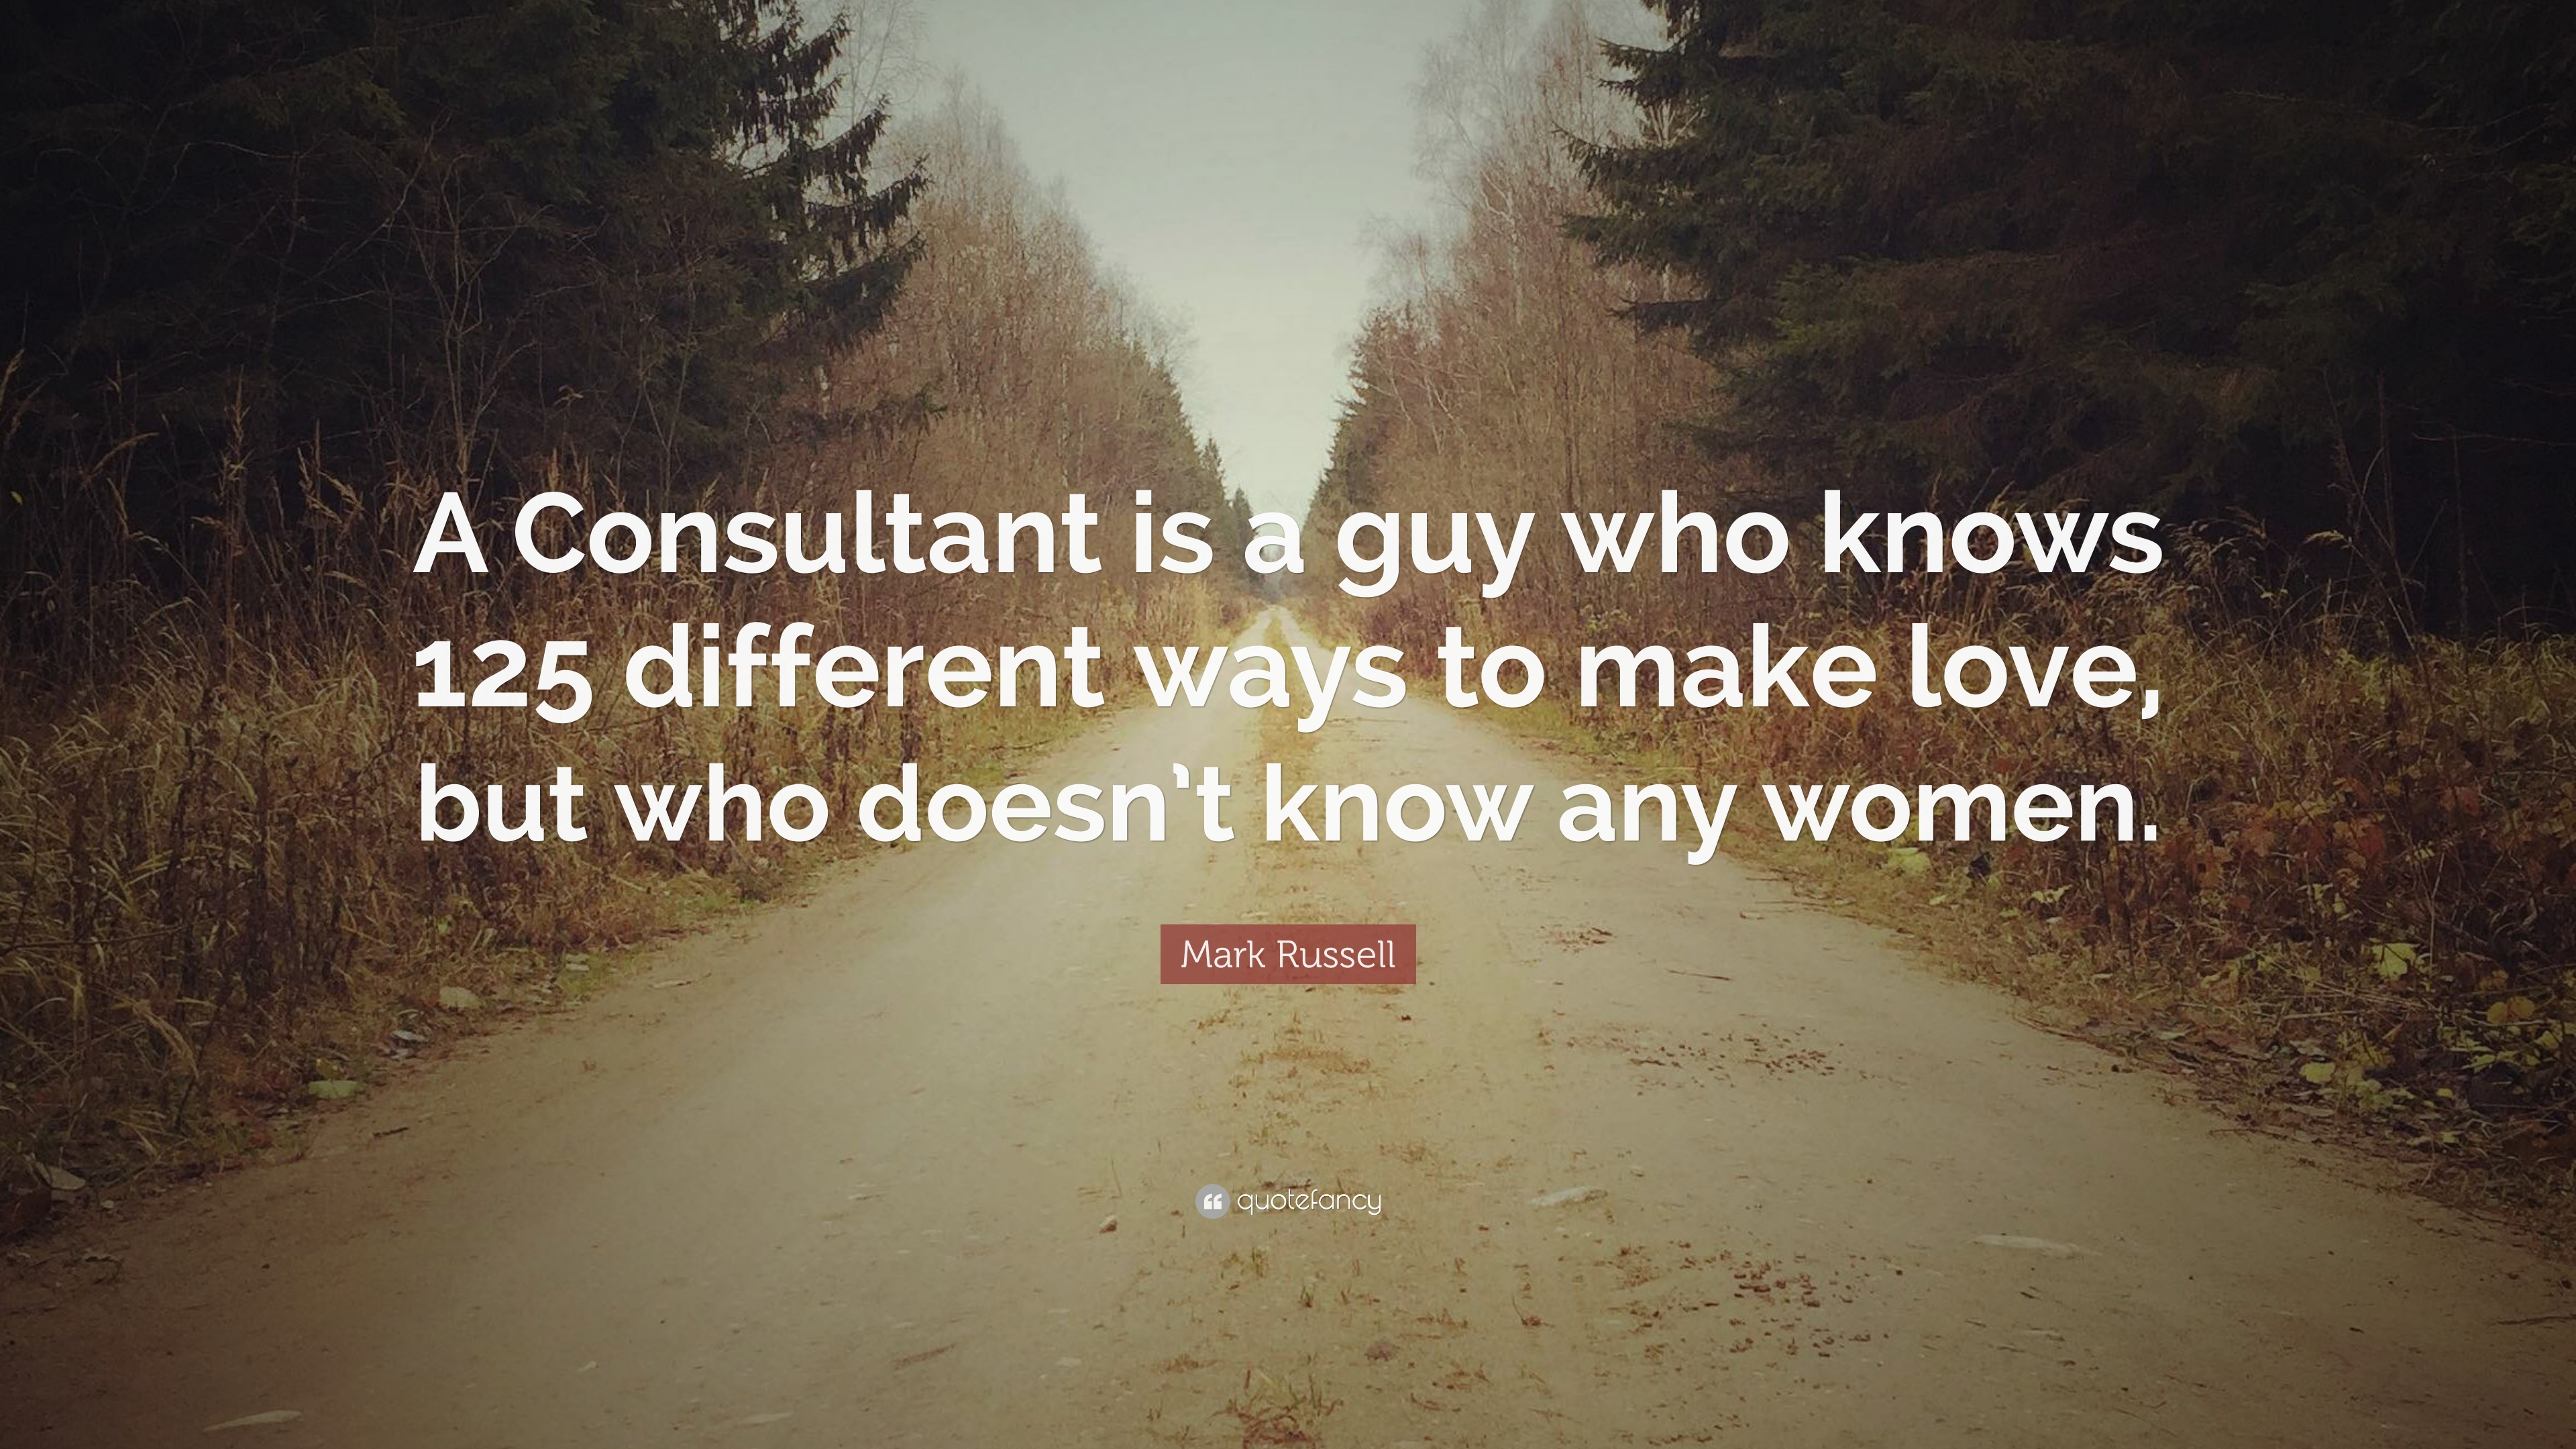 Different ways to make love - Mark Russell Quote A Consultant Is A Guy Who Knows 125 Different Ways To